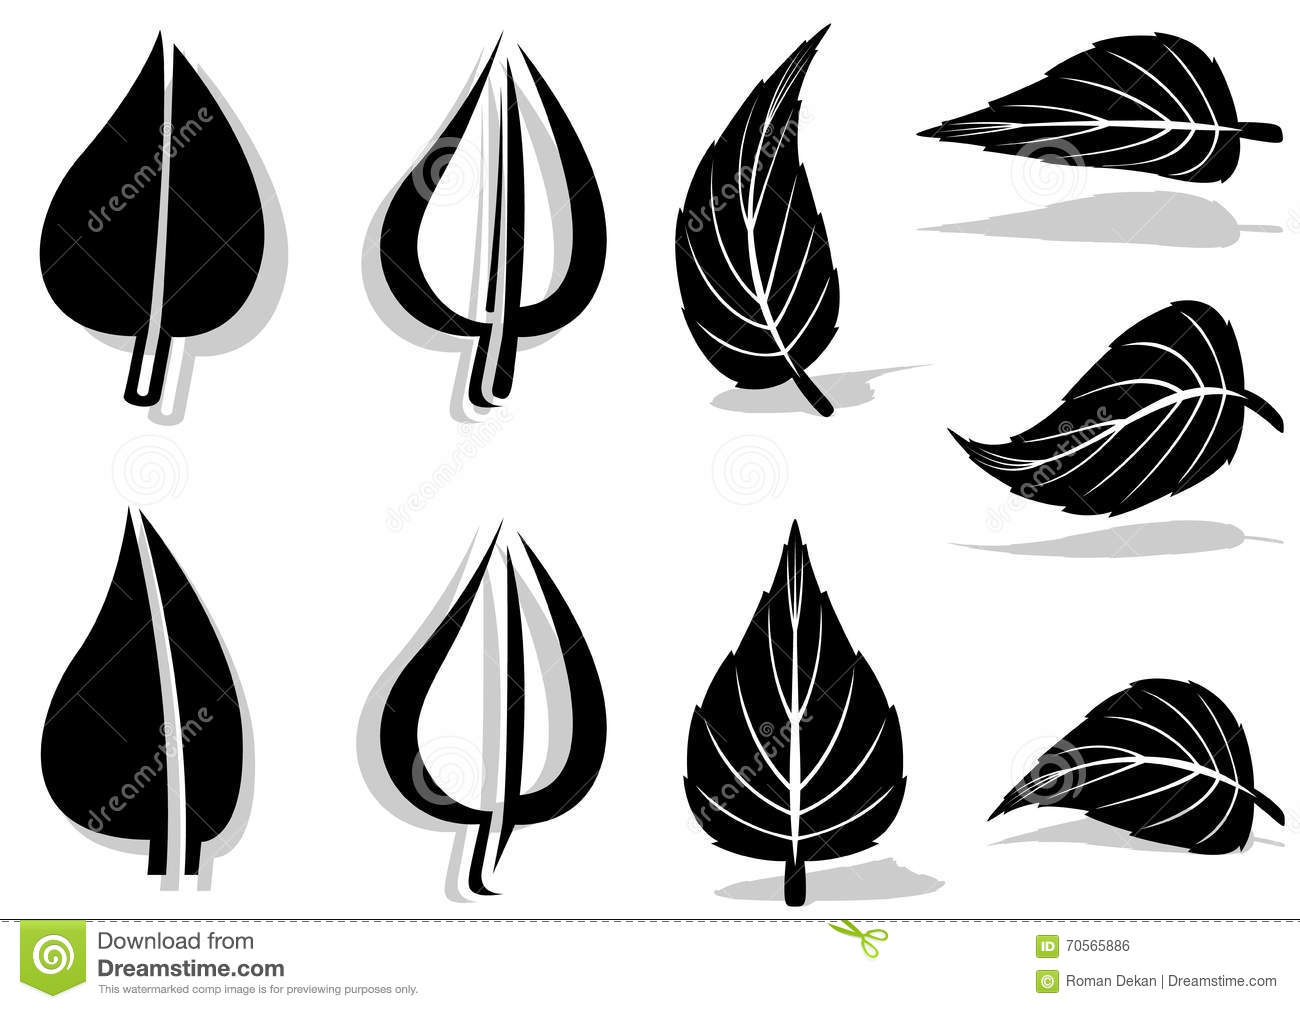 Leaf Symbol stock vector. Illustration of vector, black ...